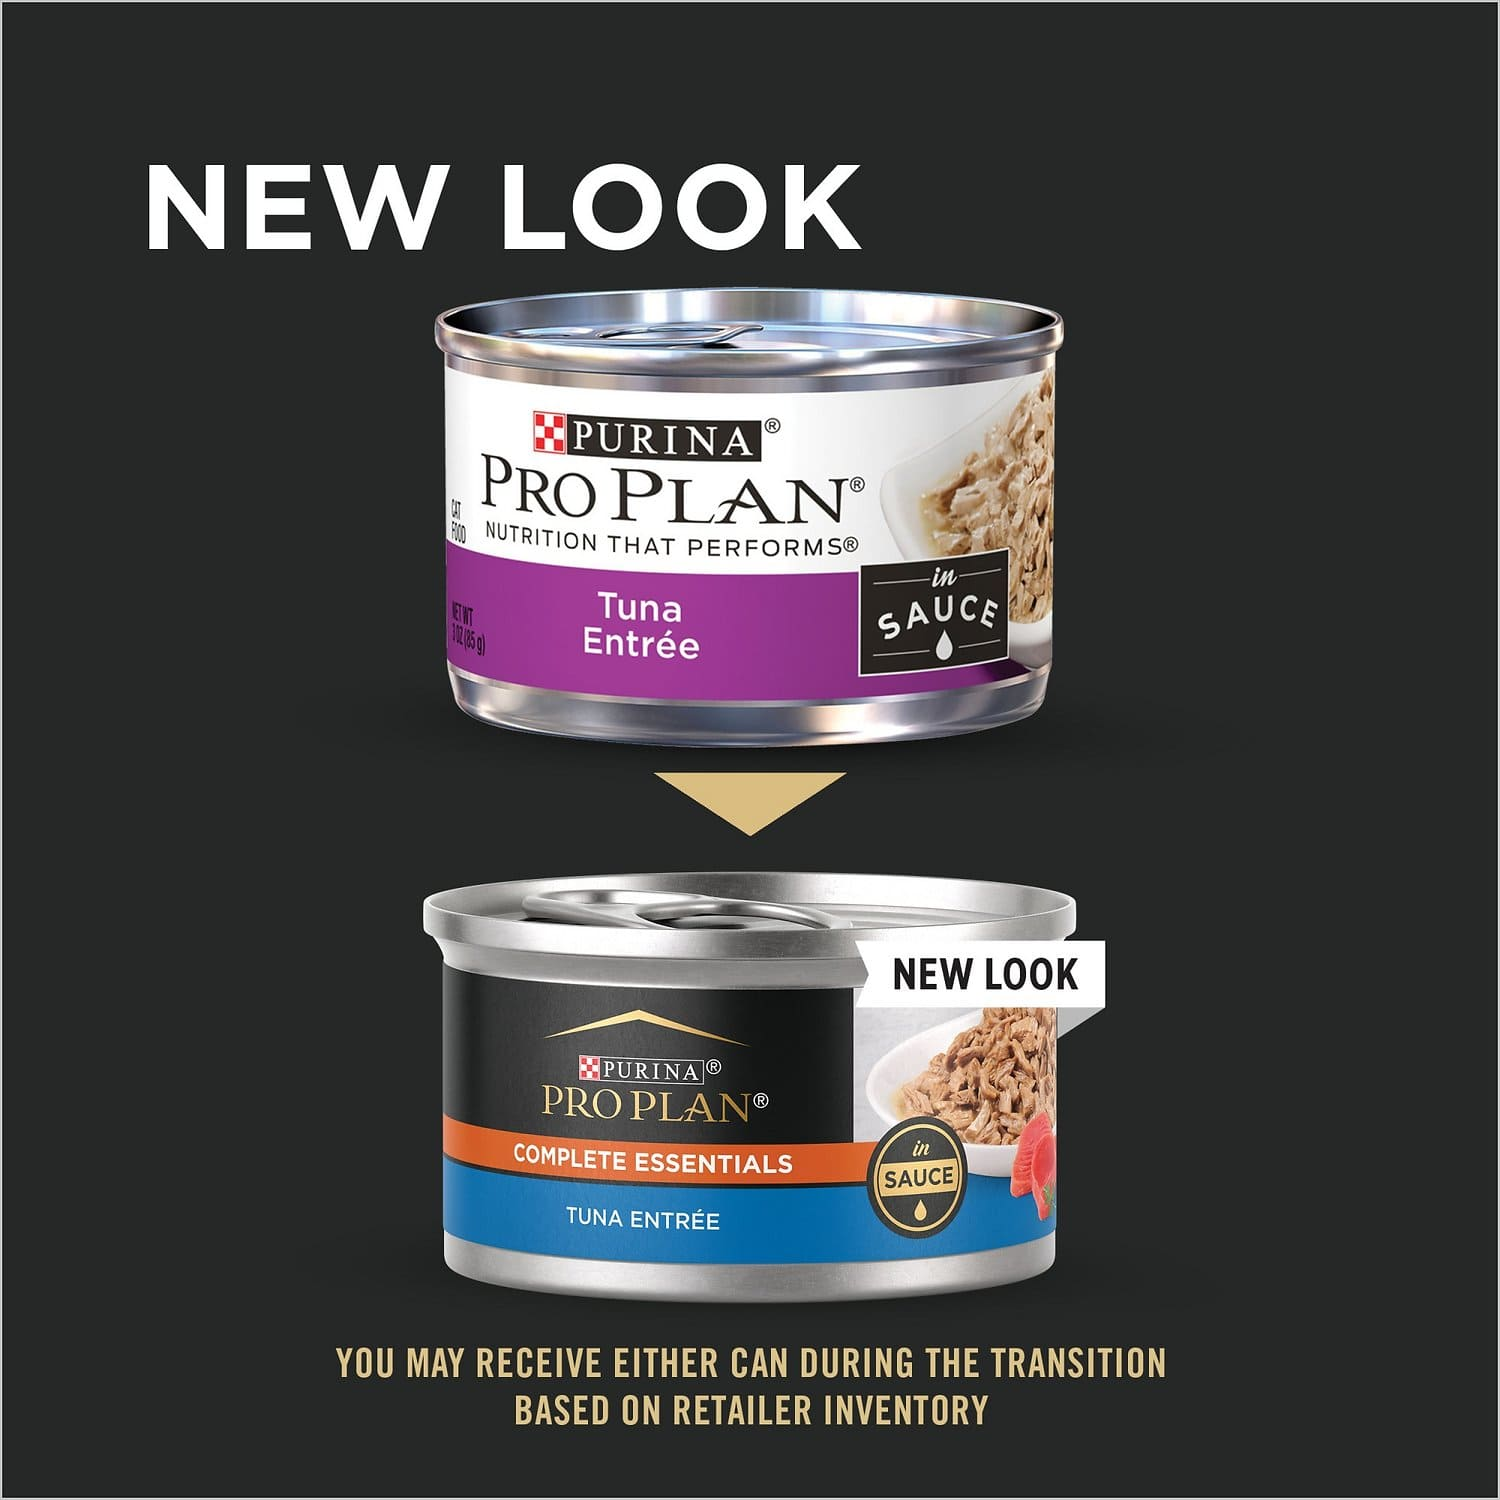 Purina Pro Plan Complete Essentials Entree in Sauce 24 x 3 oz can Tuna 2